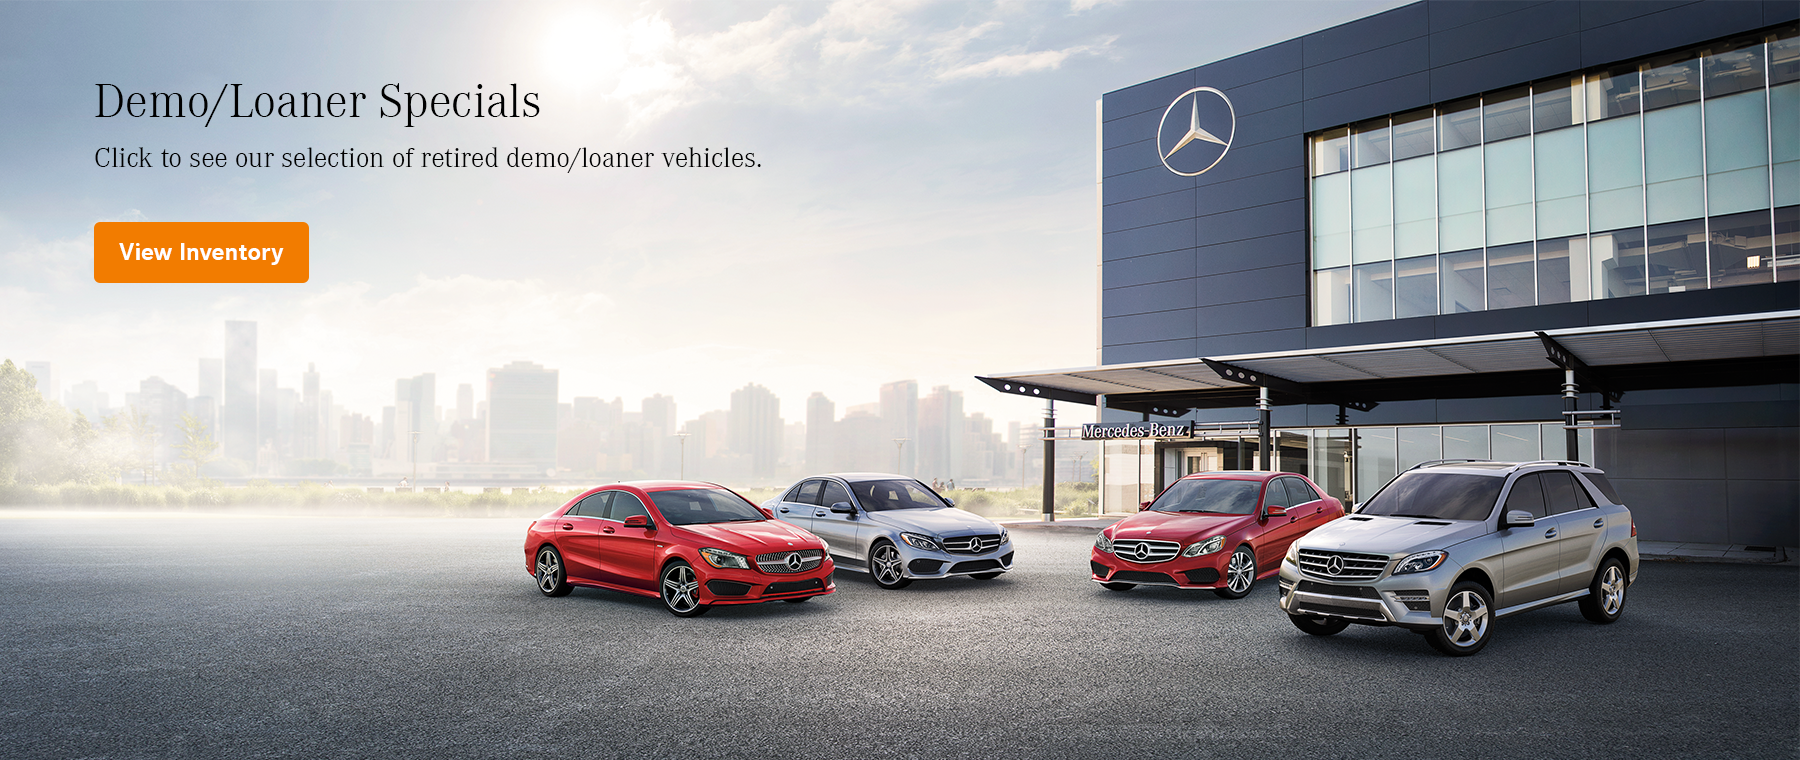 Mercedes benz of midlothian in va new used cars for Mercedes benz of richmond va